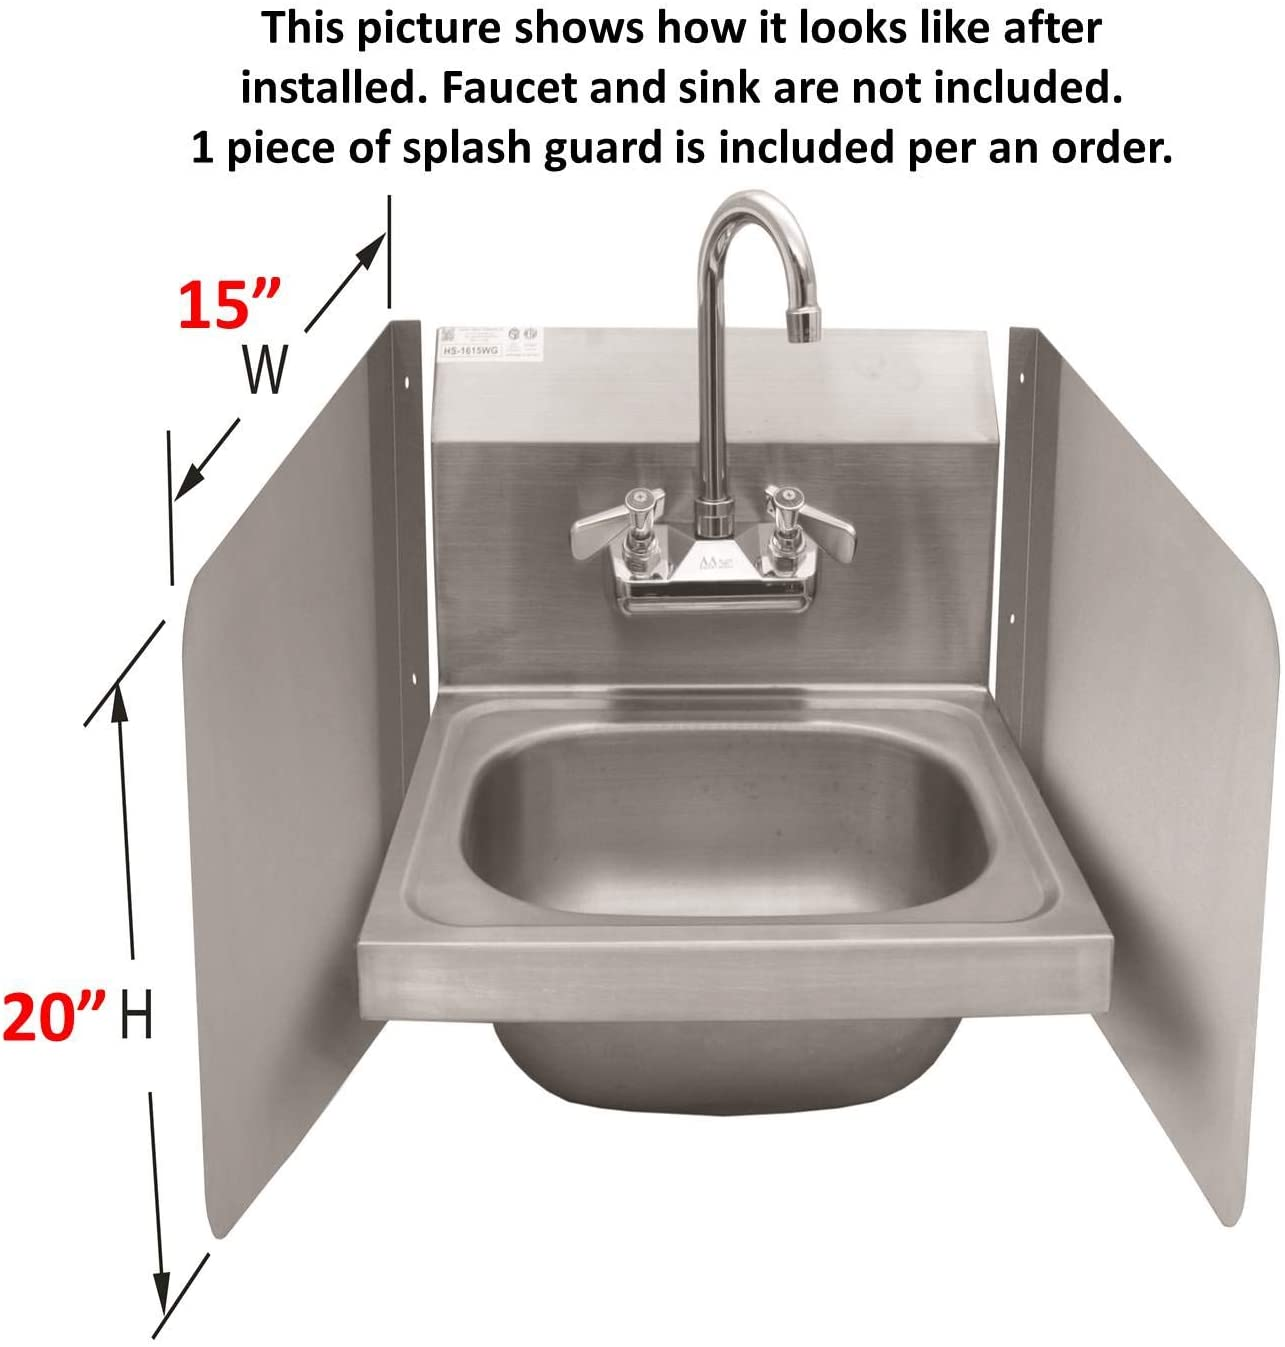 ace sp s1520 wall mount splash guard for commercial restaurant hand sink and compartment prep sink nsf 15 w x 20 h stainless steel